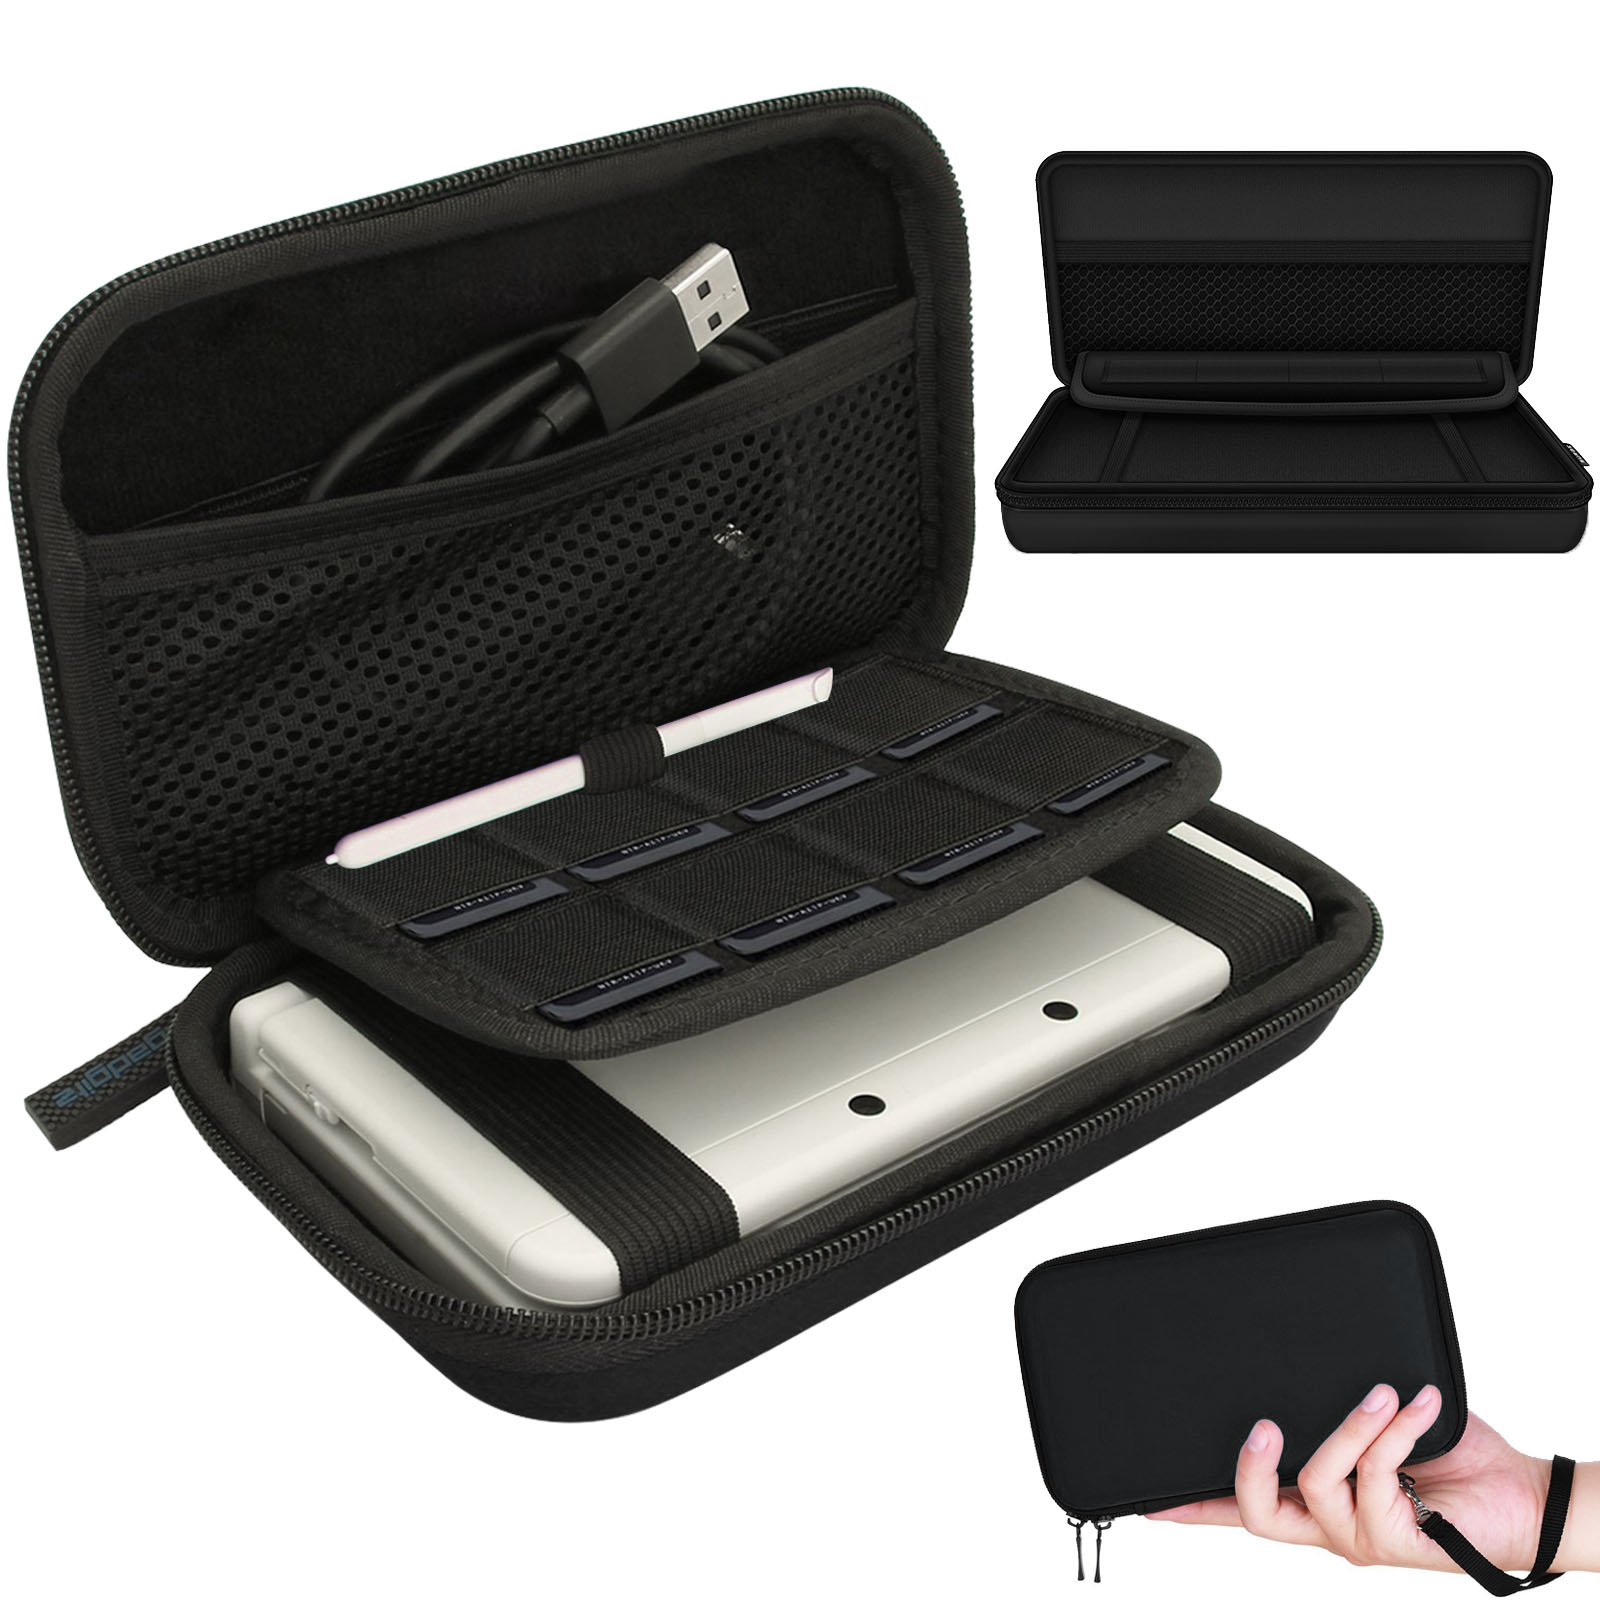 EVA Hard Protective Carry Case Bag Pouch For New Nintendo 3DS XL 3DS LL 3DS